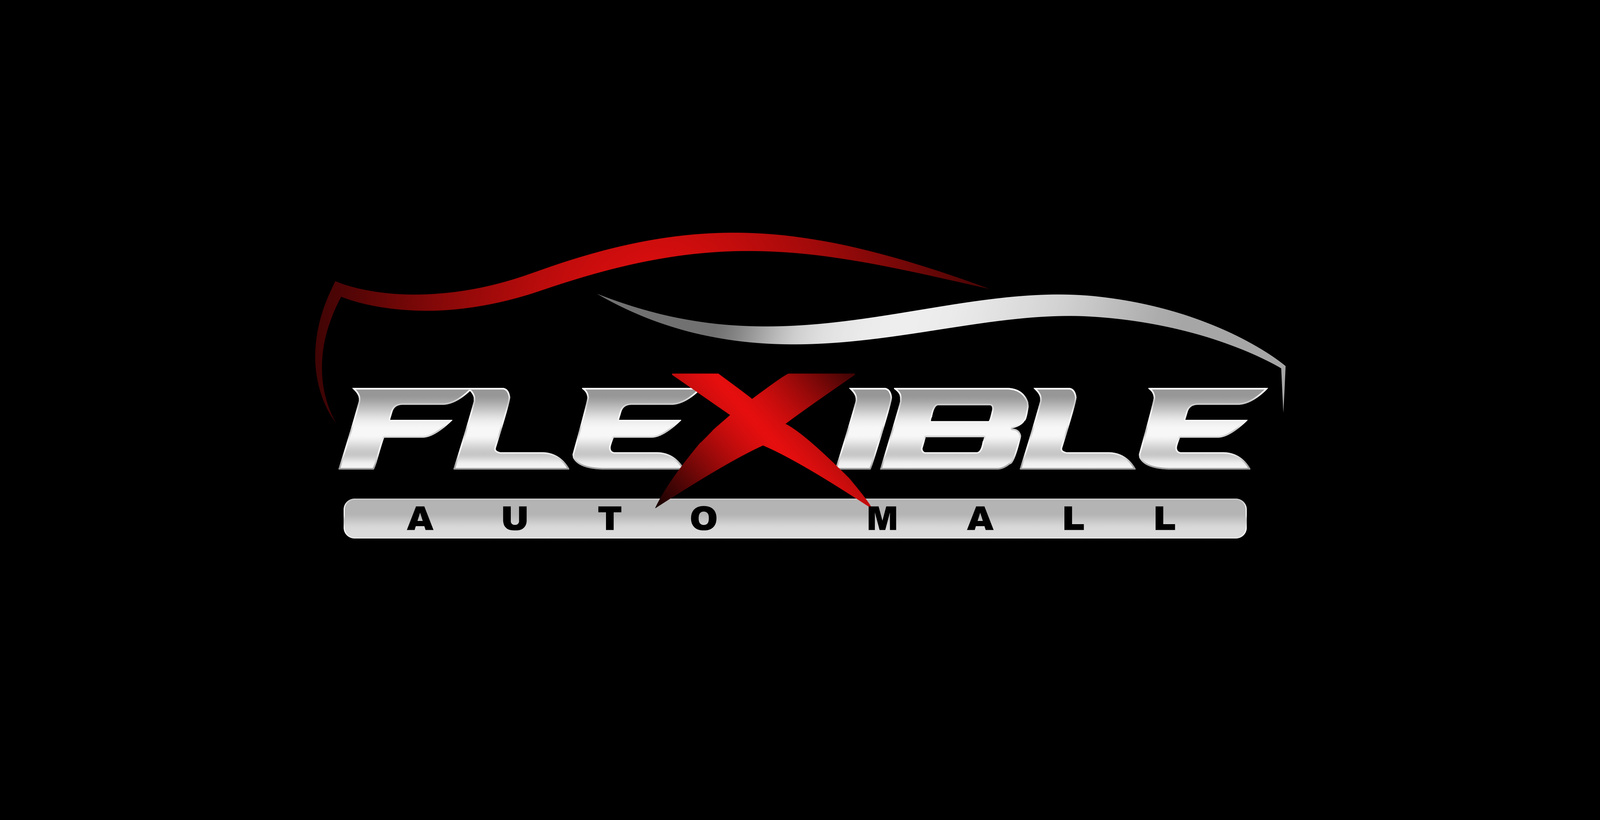 Flexible Auto Mall - Allentown, PA: Read Consumer reviews, Browse Used and New Cars for Sale